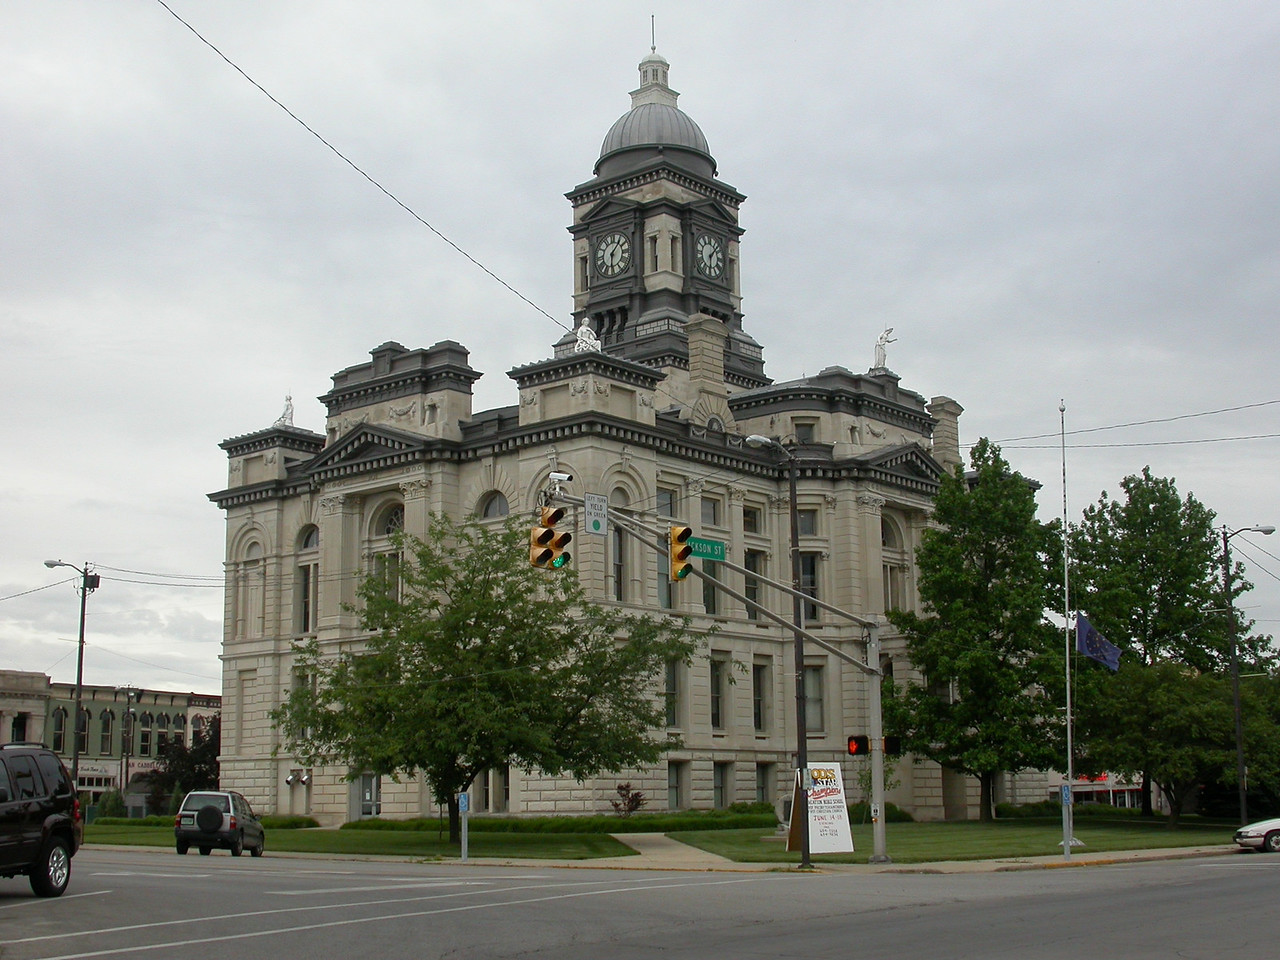 Clinton County Courthouse, Frankfort, Indiana, June 2004.